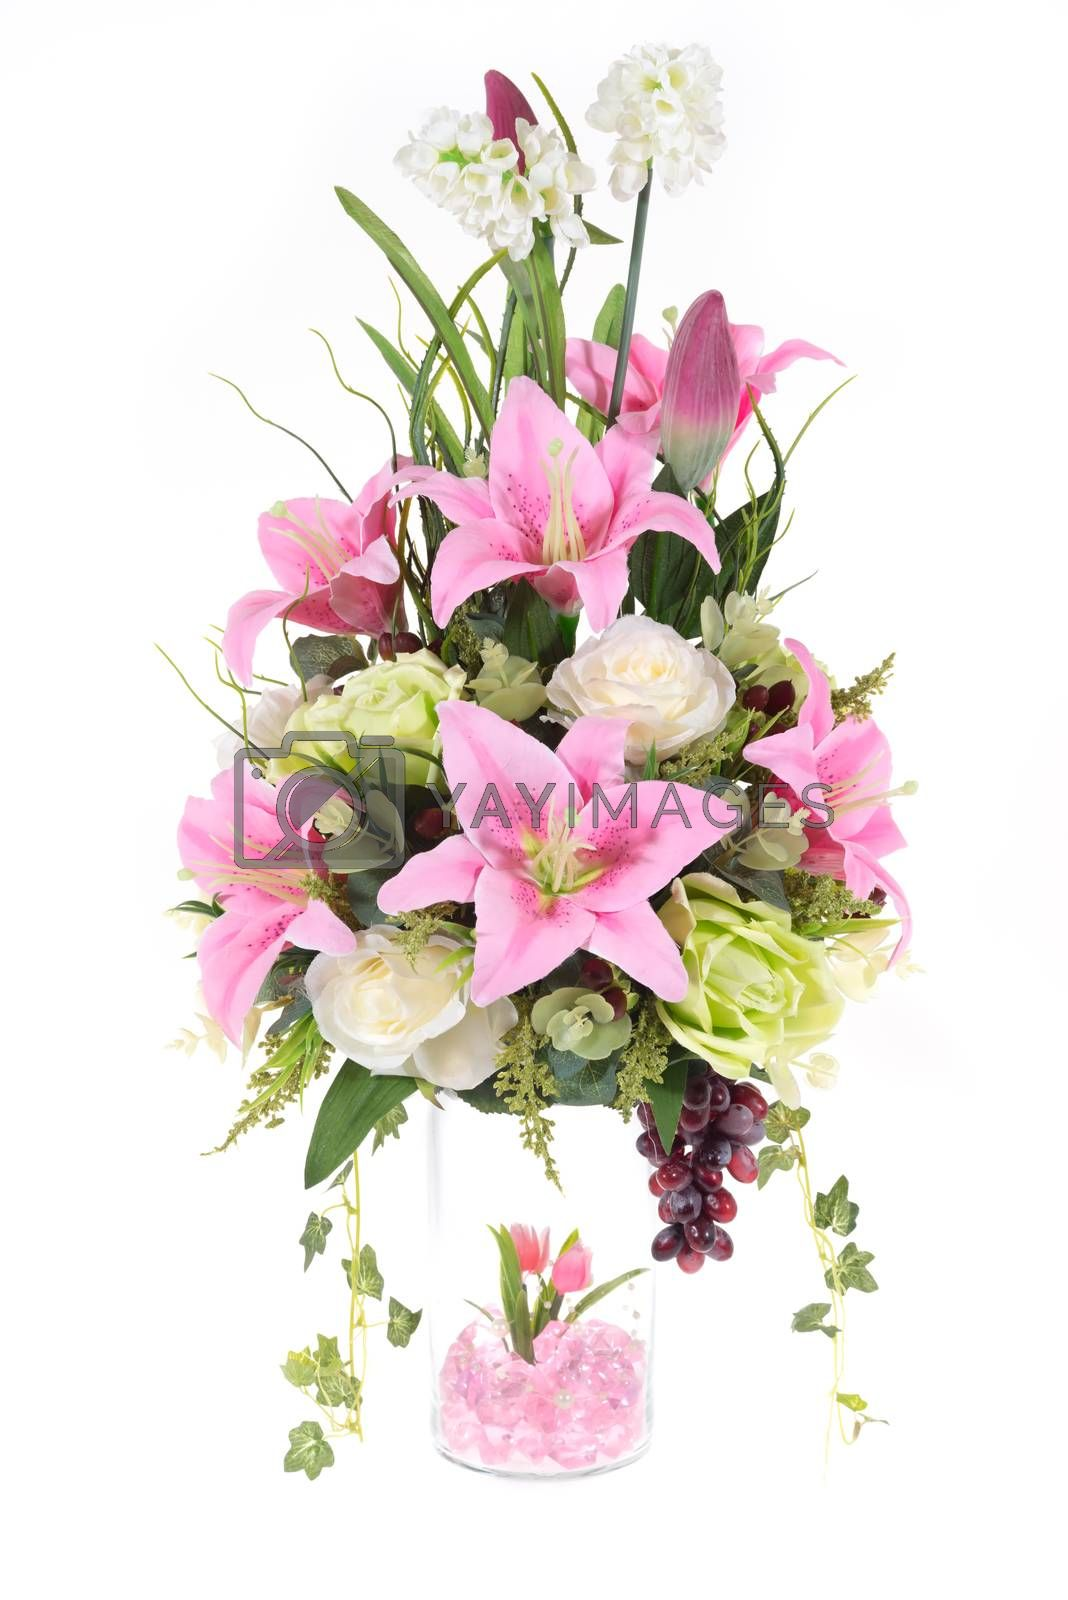 Royalty free image of Decoration artificial plastic flower with glass vase, pink cryst by iamway